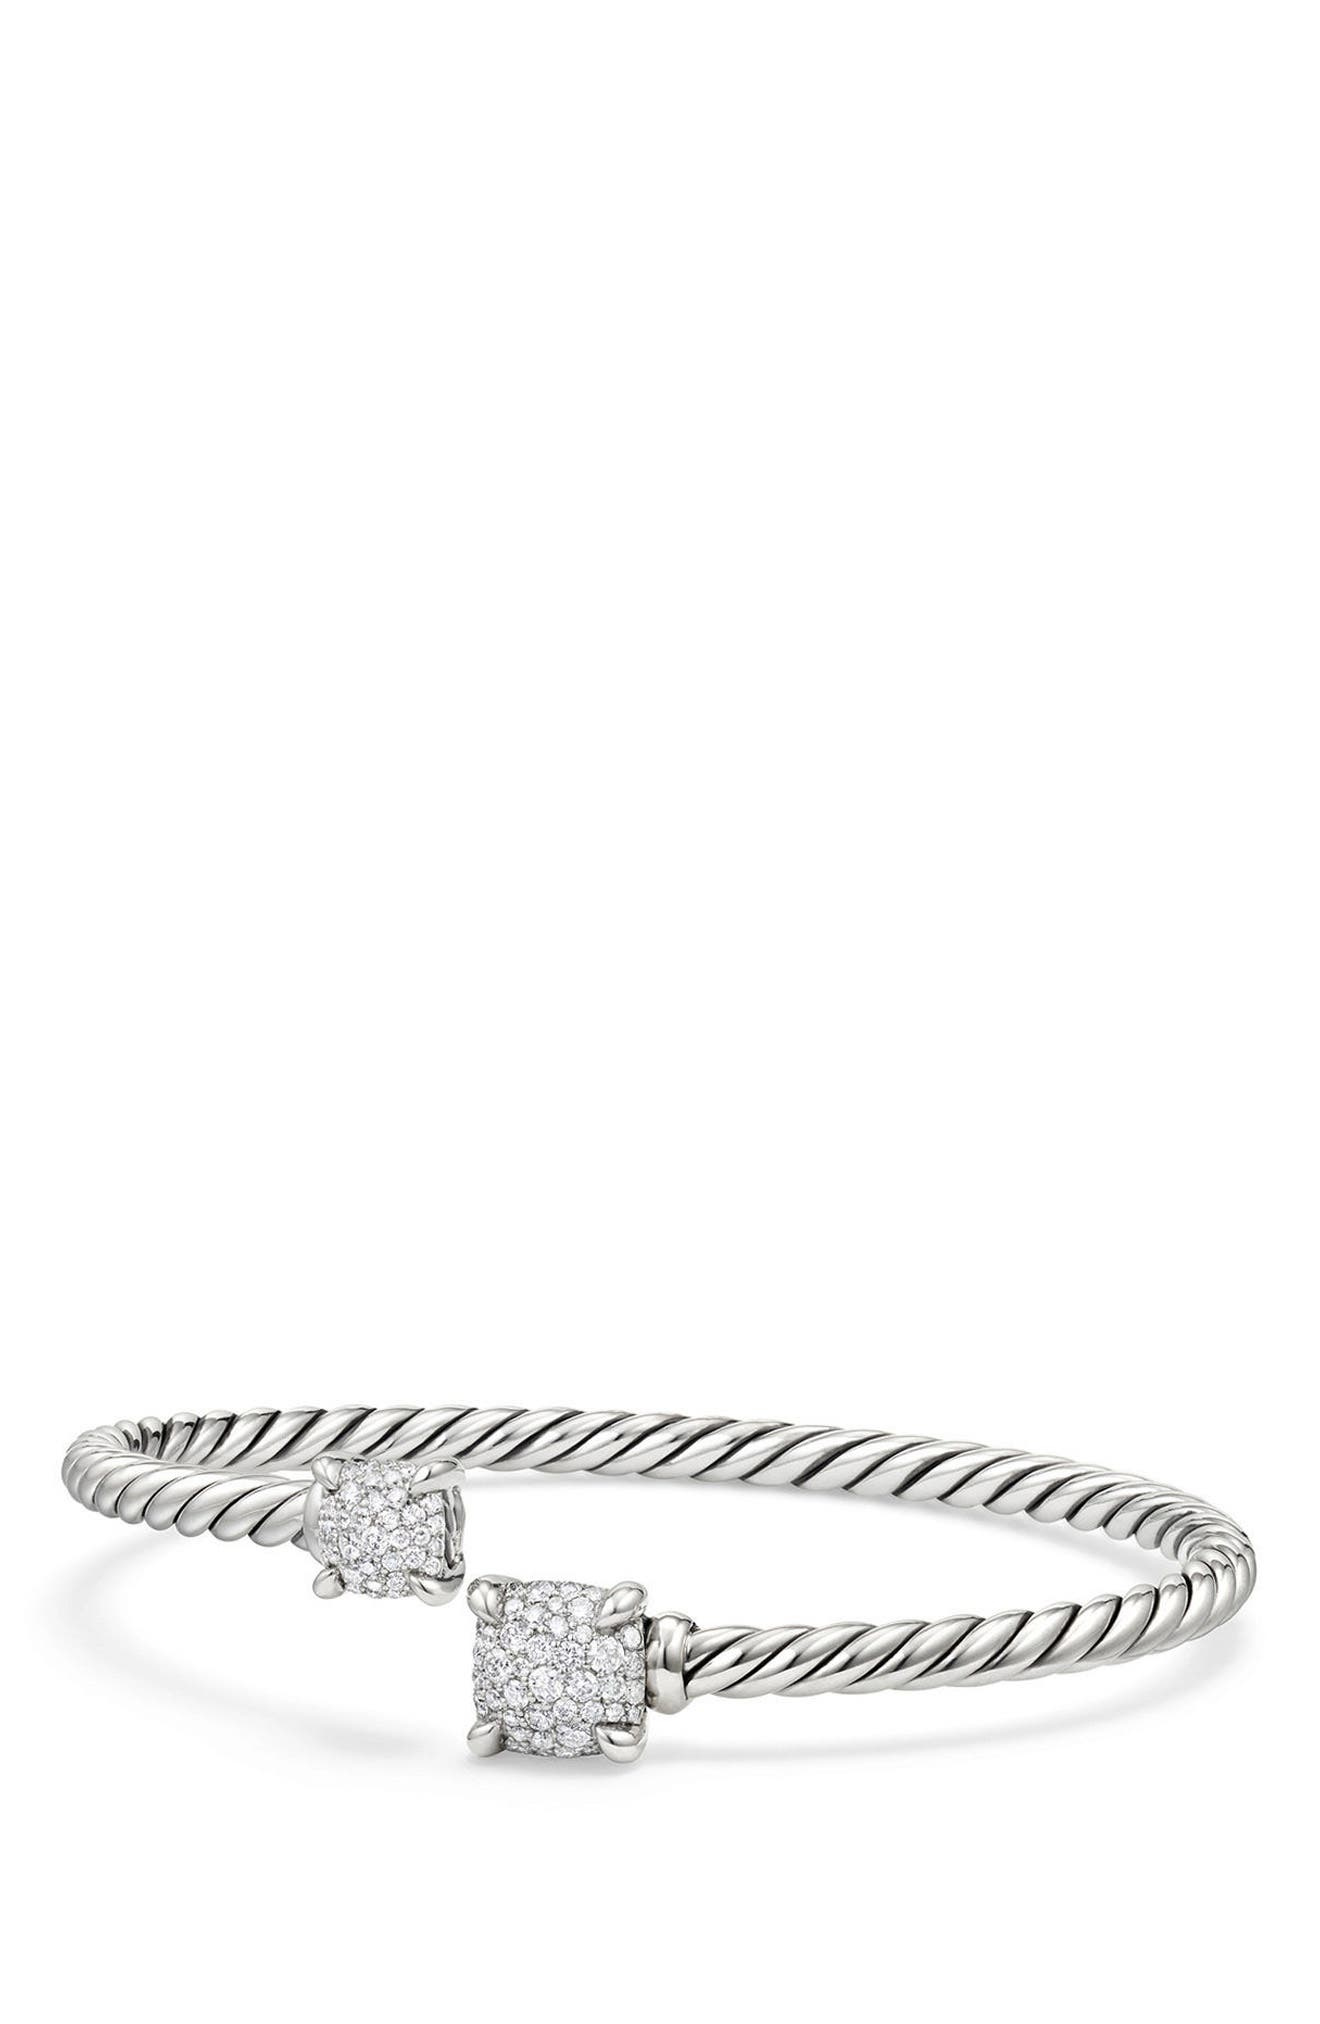 Châtelaine Bypass Bracelet with Diamonds,                             Main thumbnail 1, color,                             SILVER